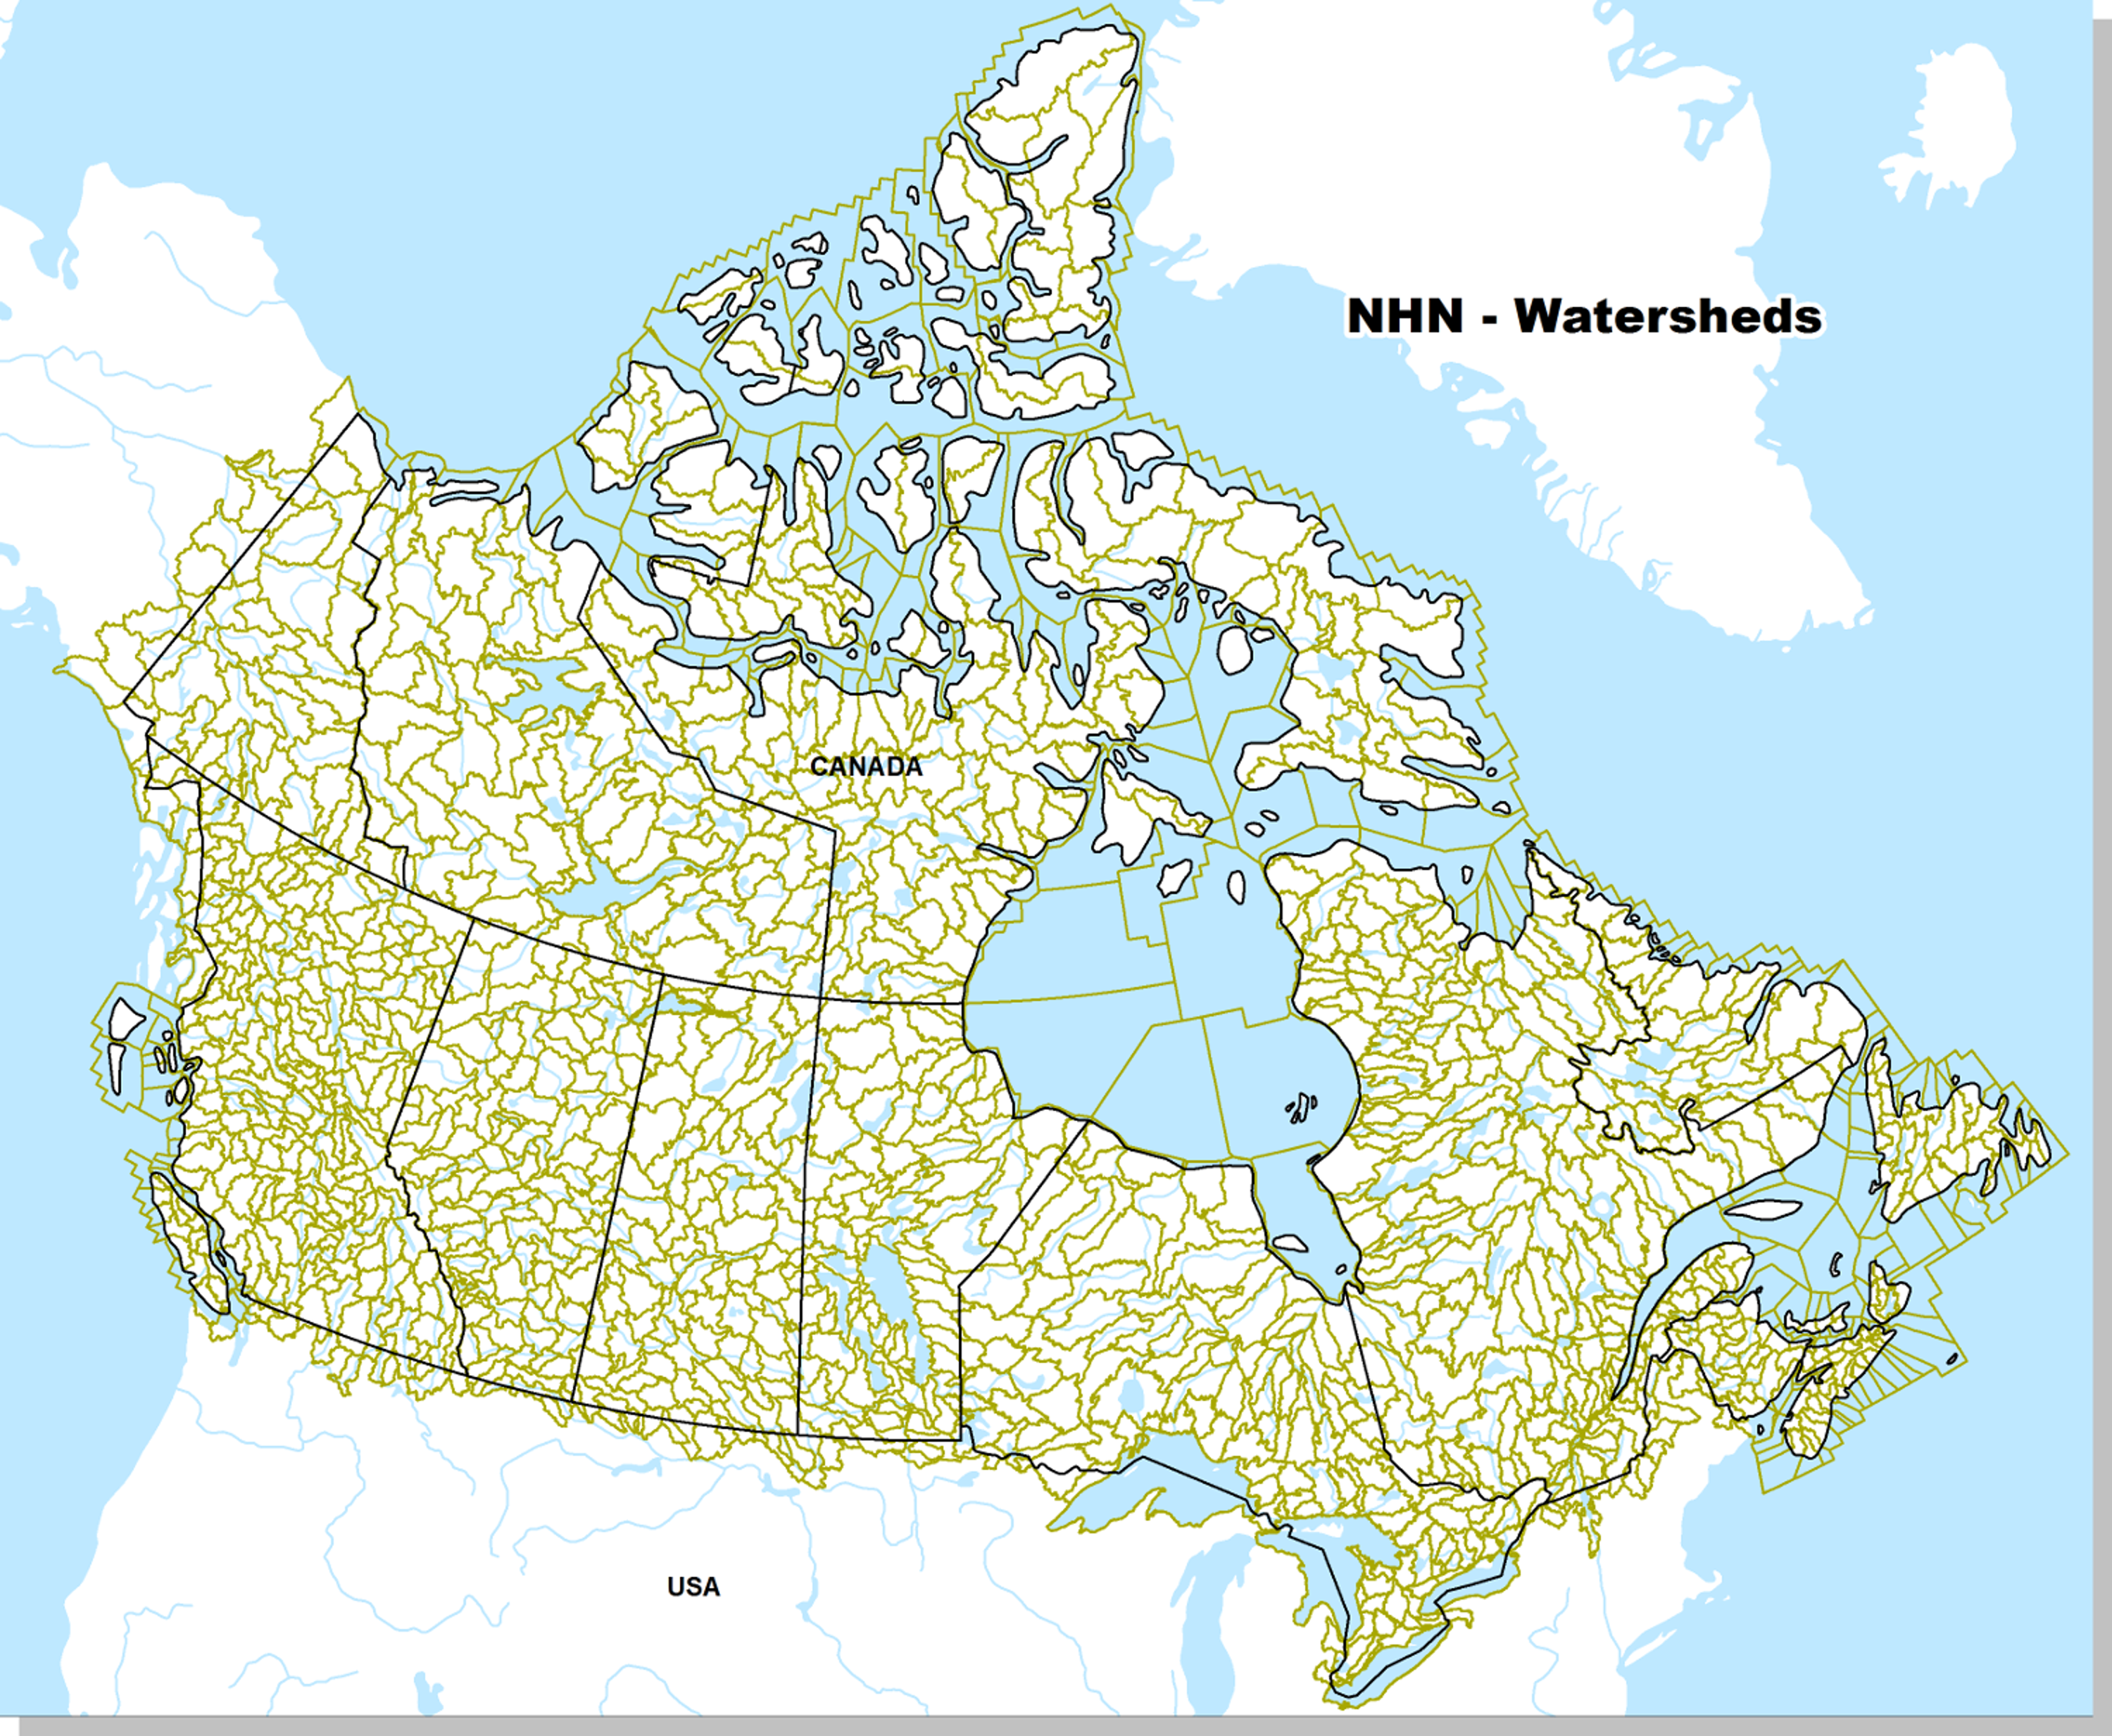 Map of Watershed Boundaries across the entire Canadian territory